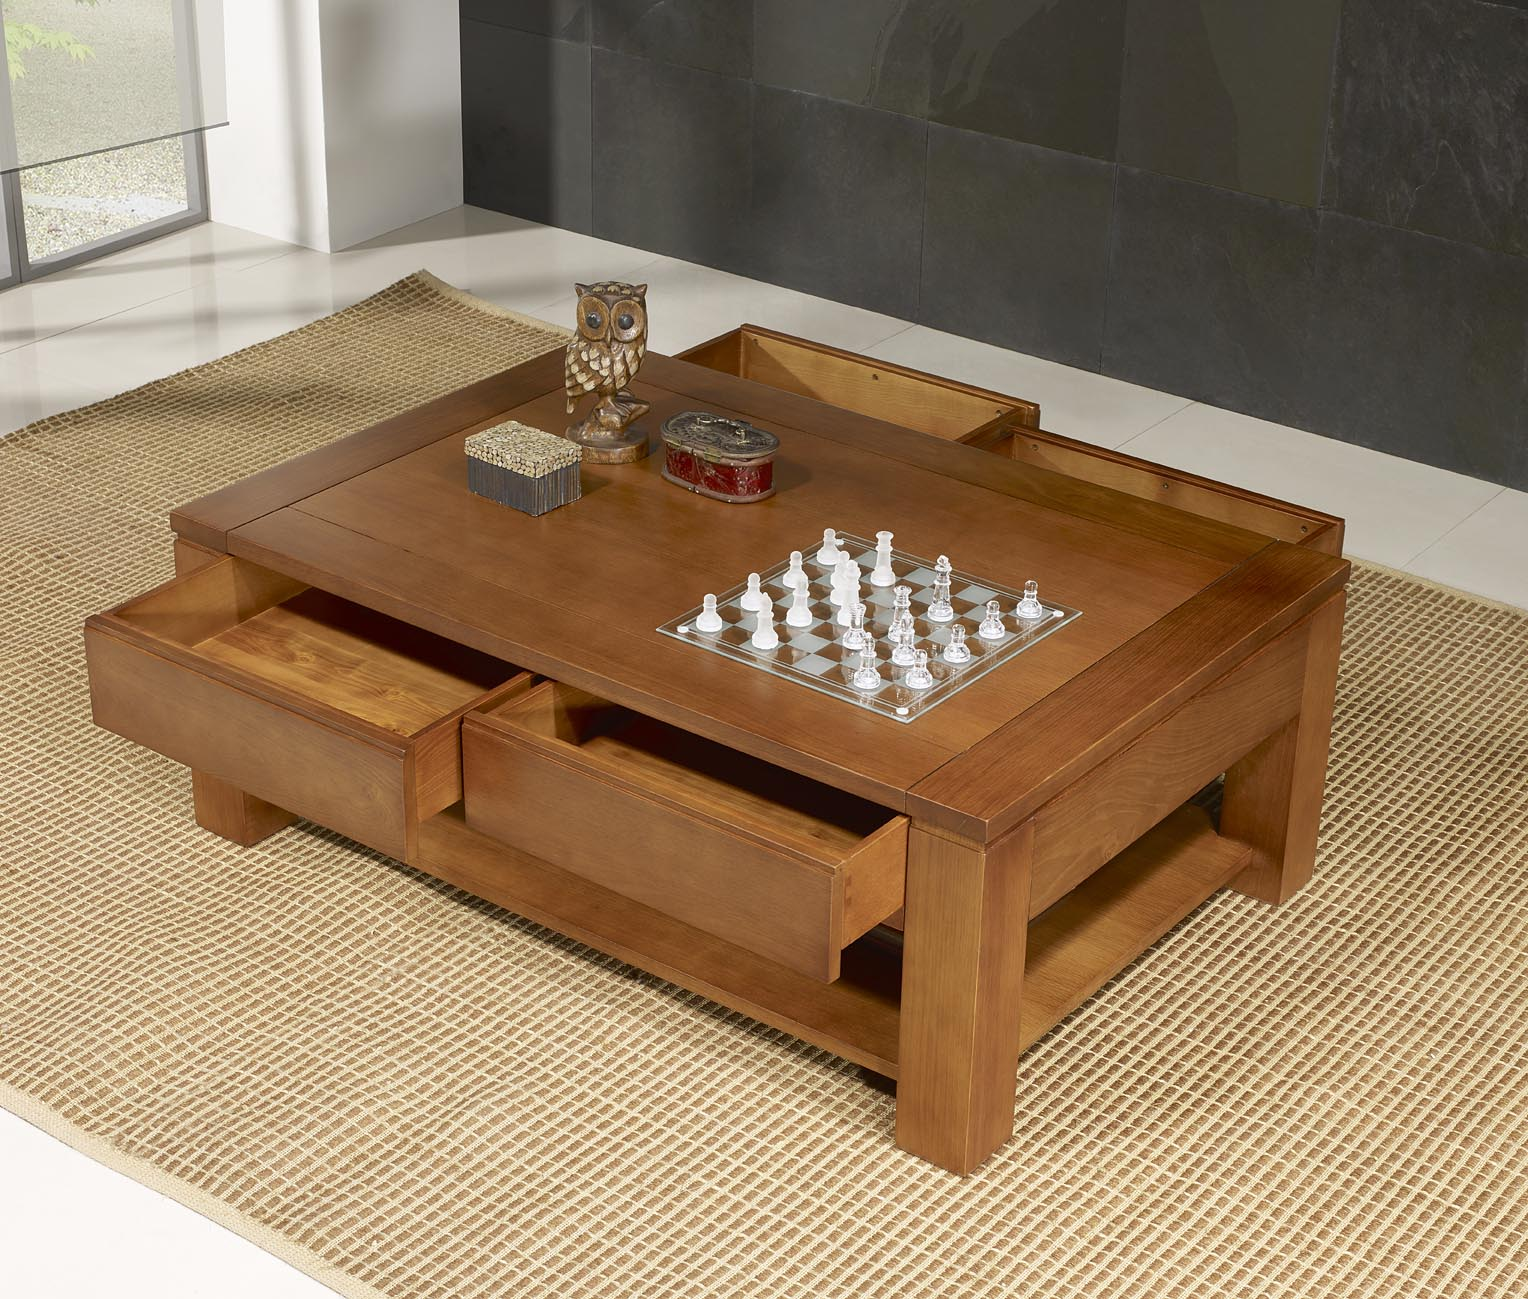 Table basse en ch ne massif ligne contemporaine longueur - Table basse contemporaine bois ...